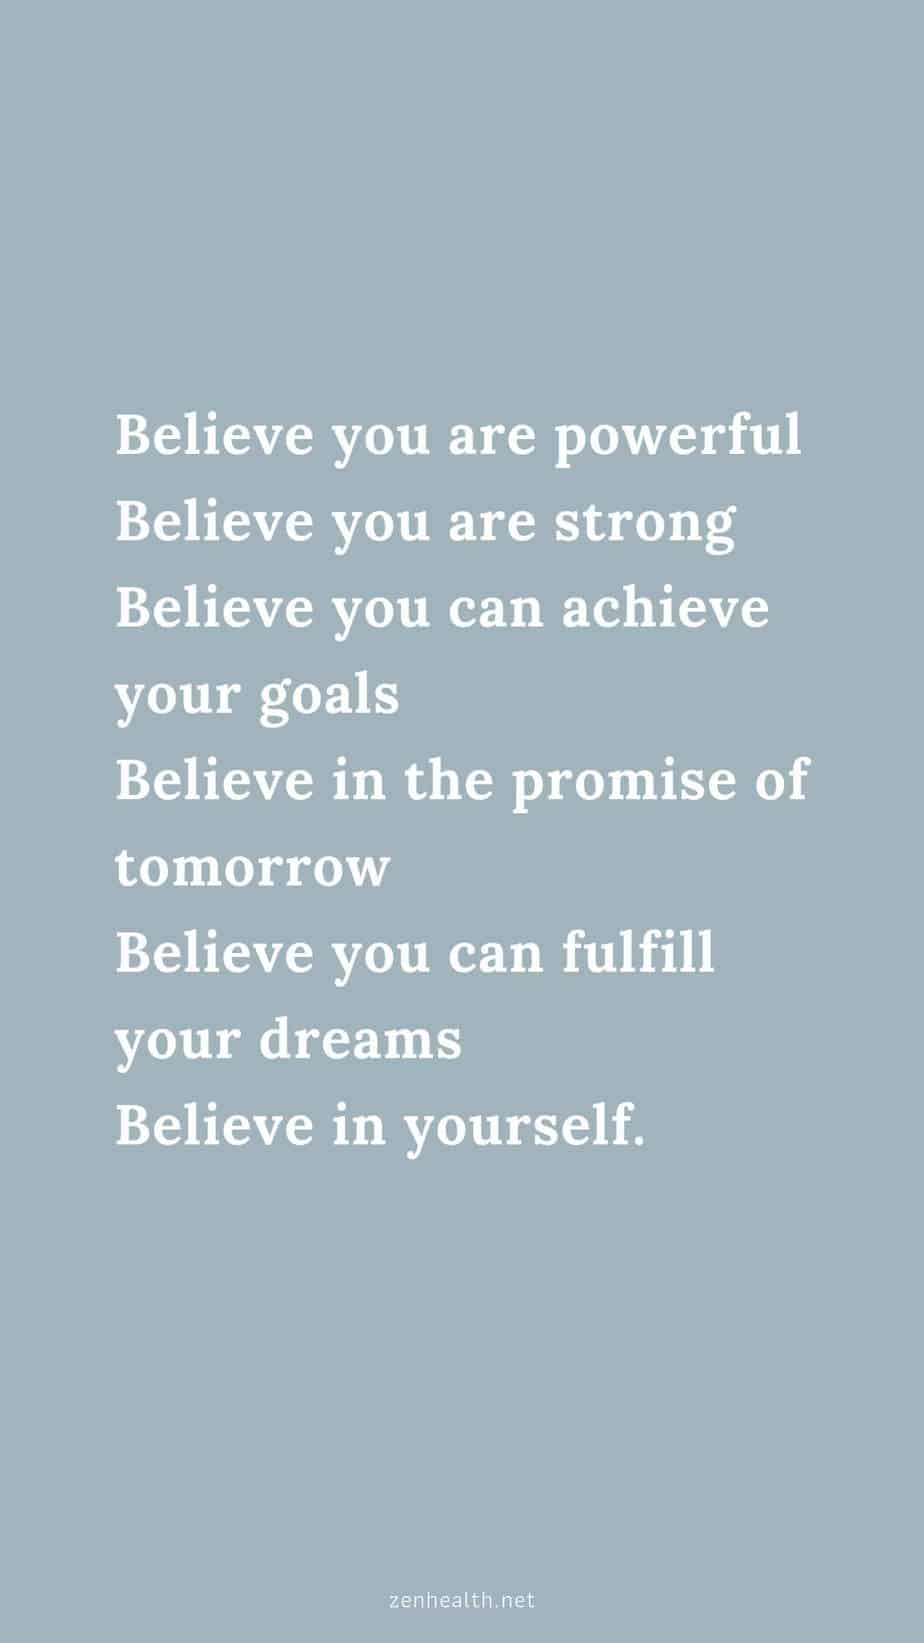 Believe you are powerful